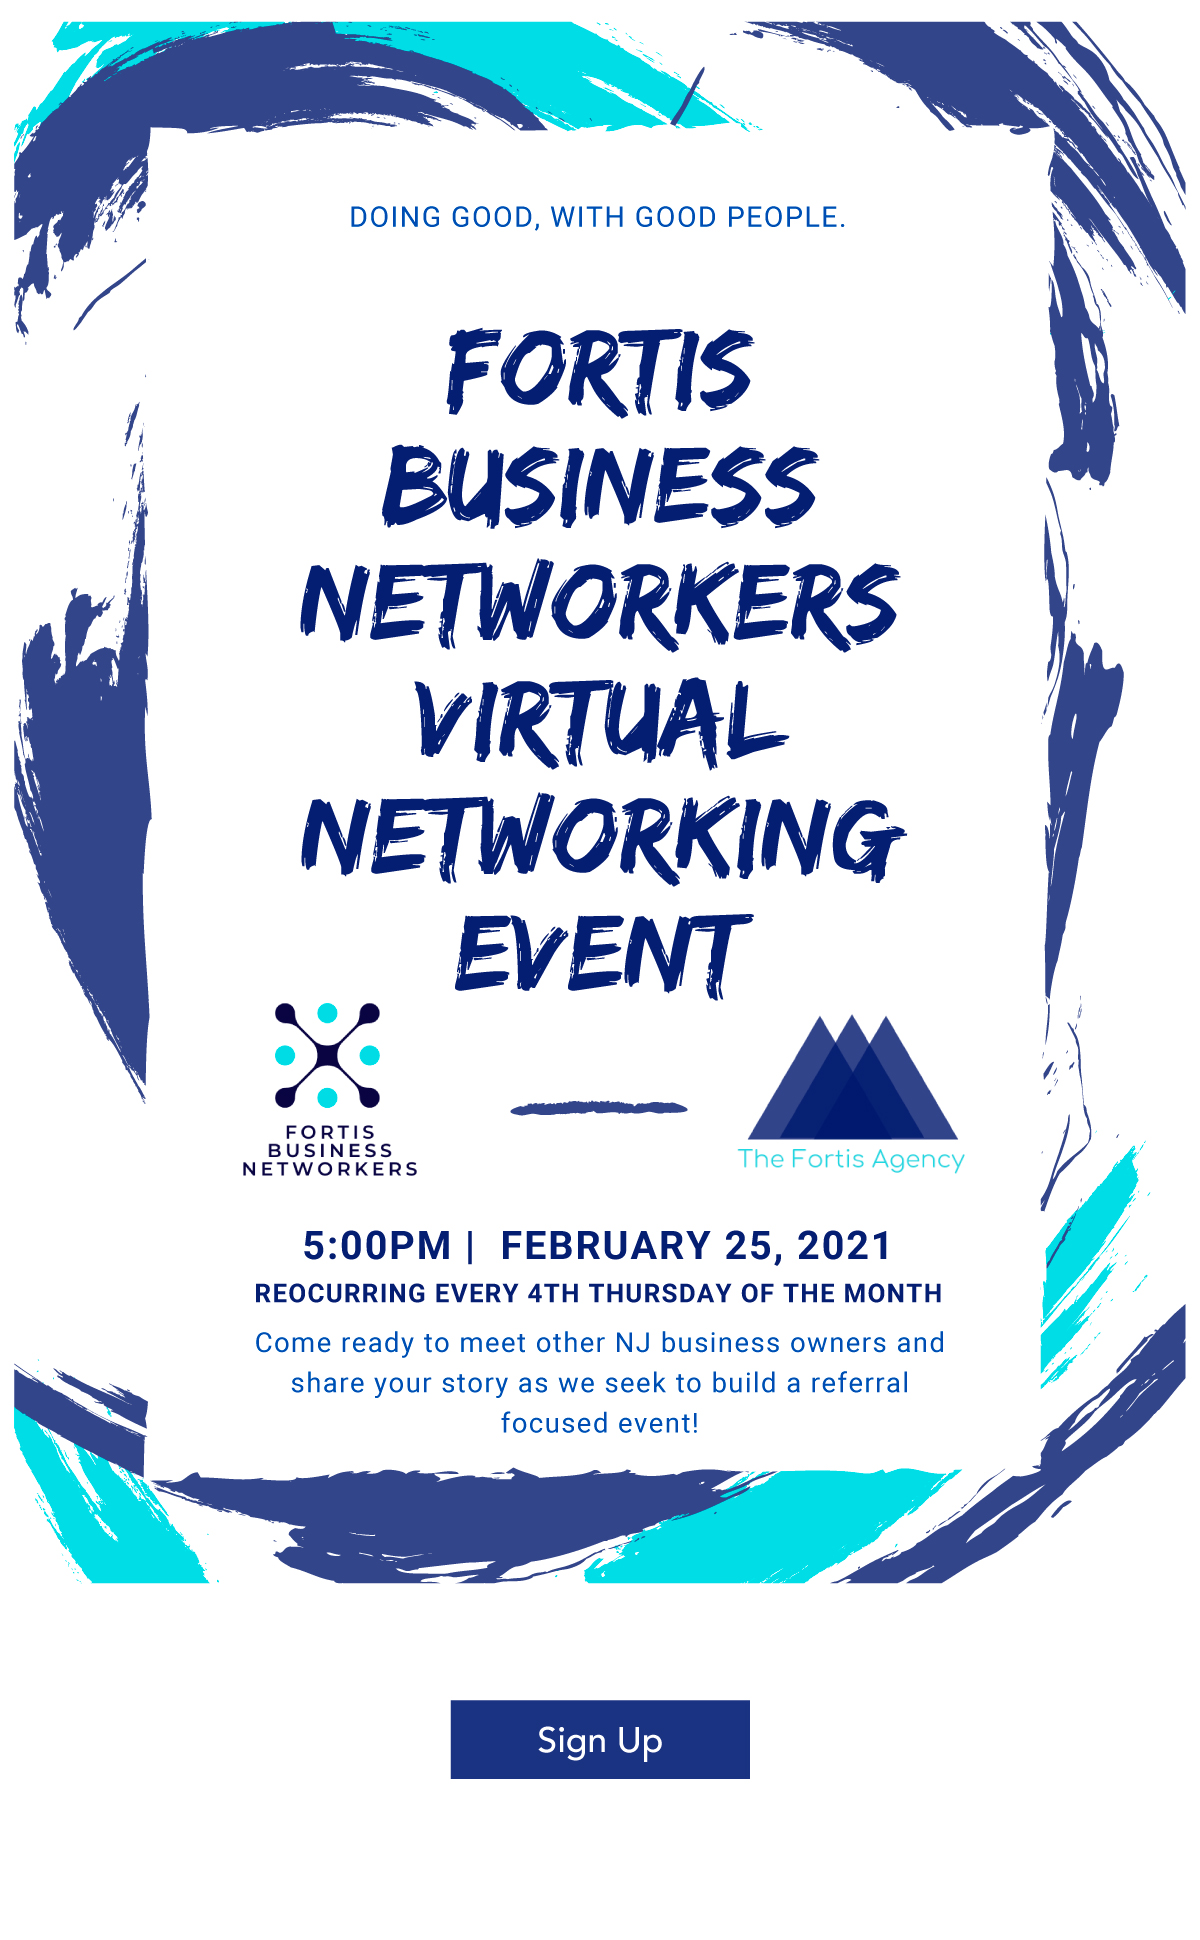 Fortis Business Networkers Virtual Networking Event